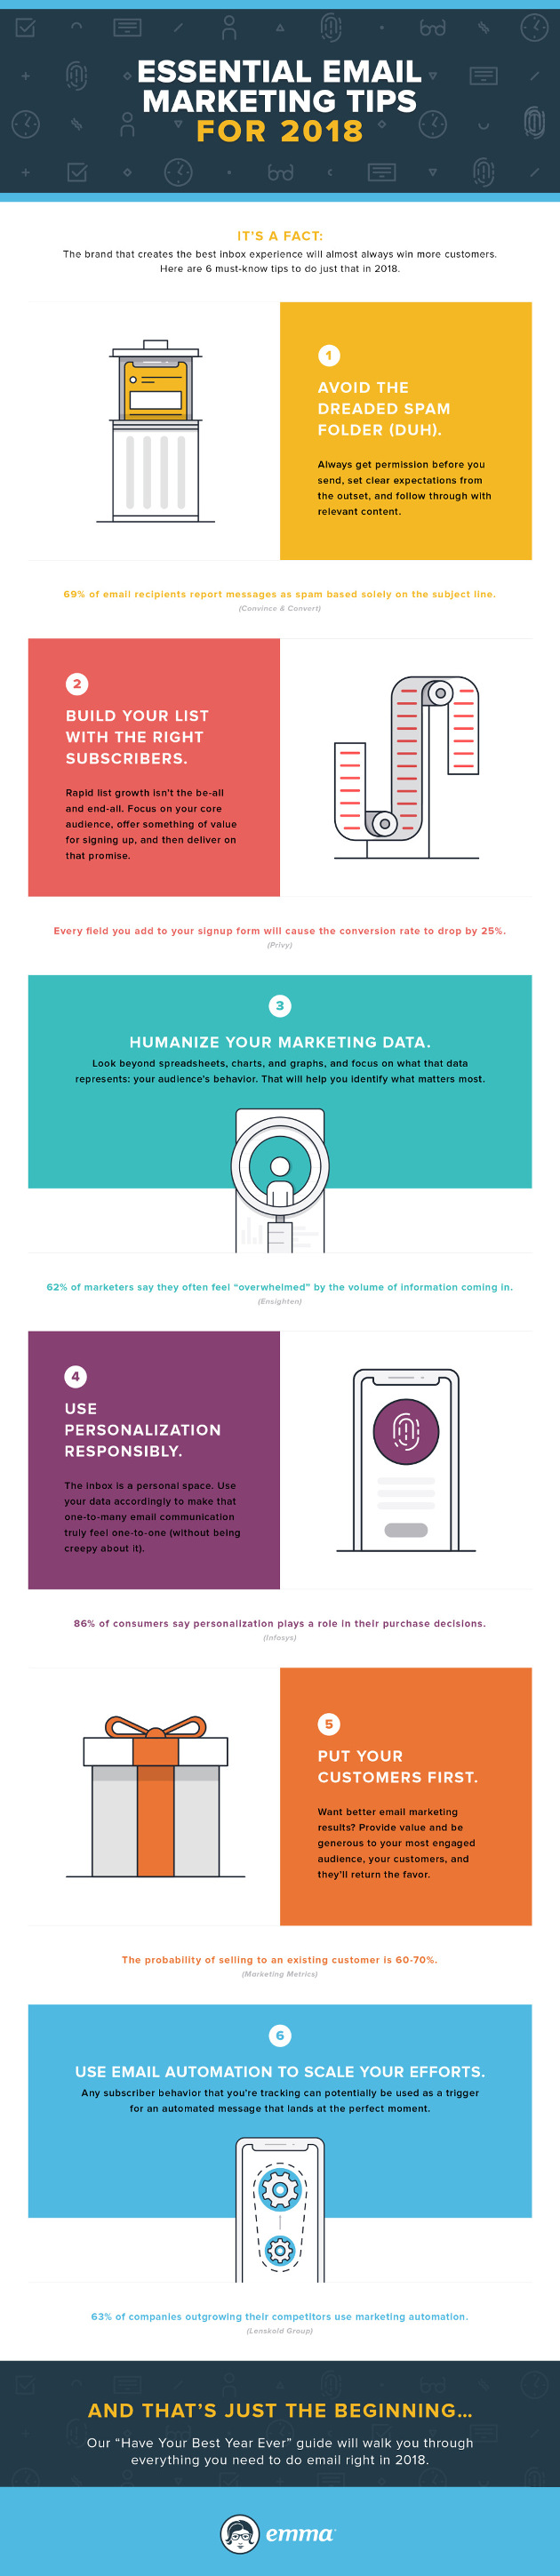 6 Essential Email Marketing Tips [Infographic]